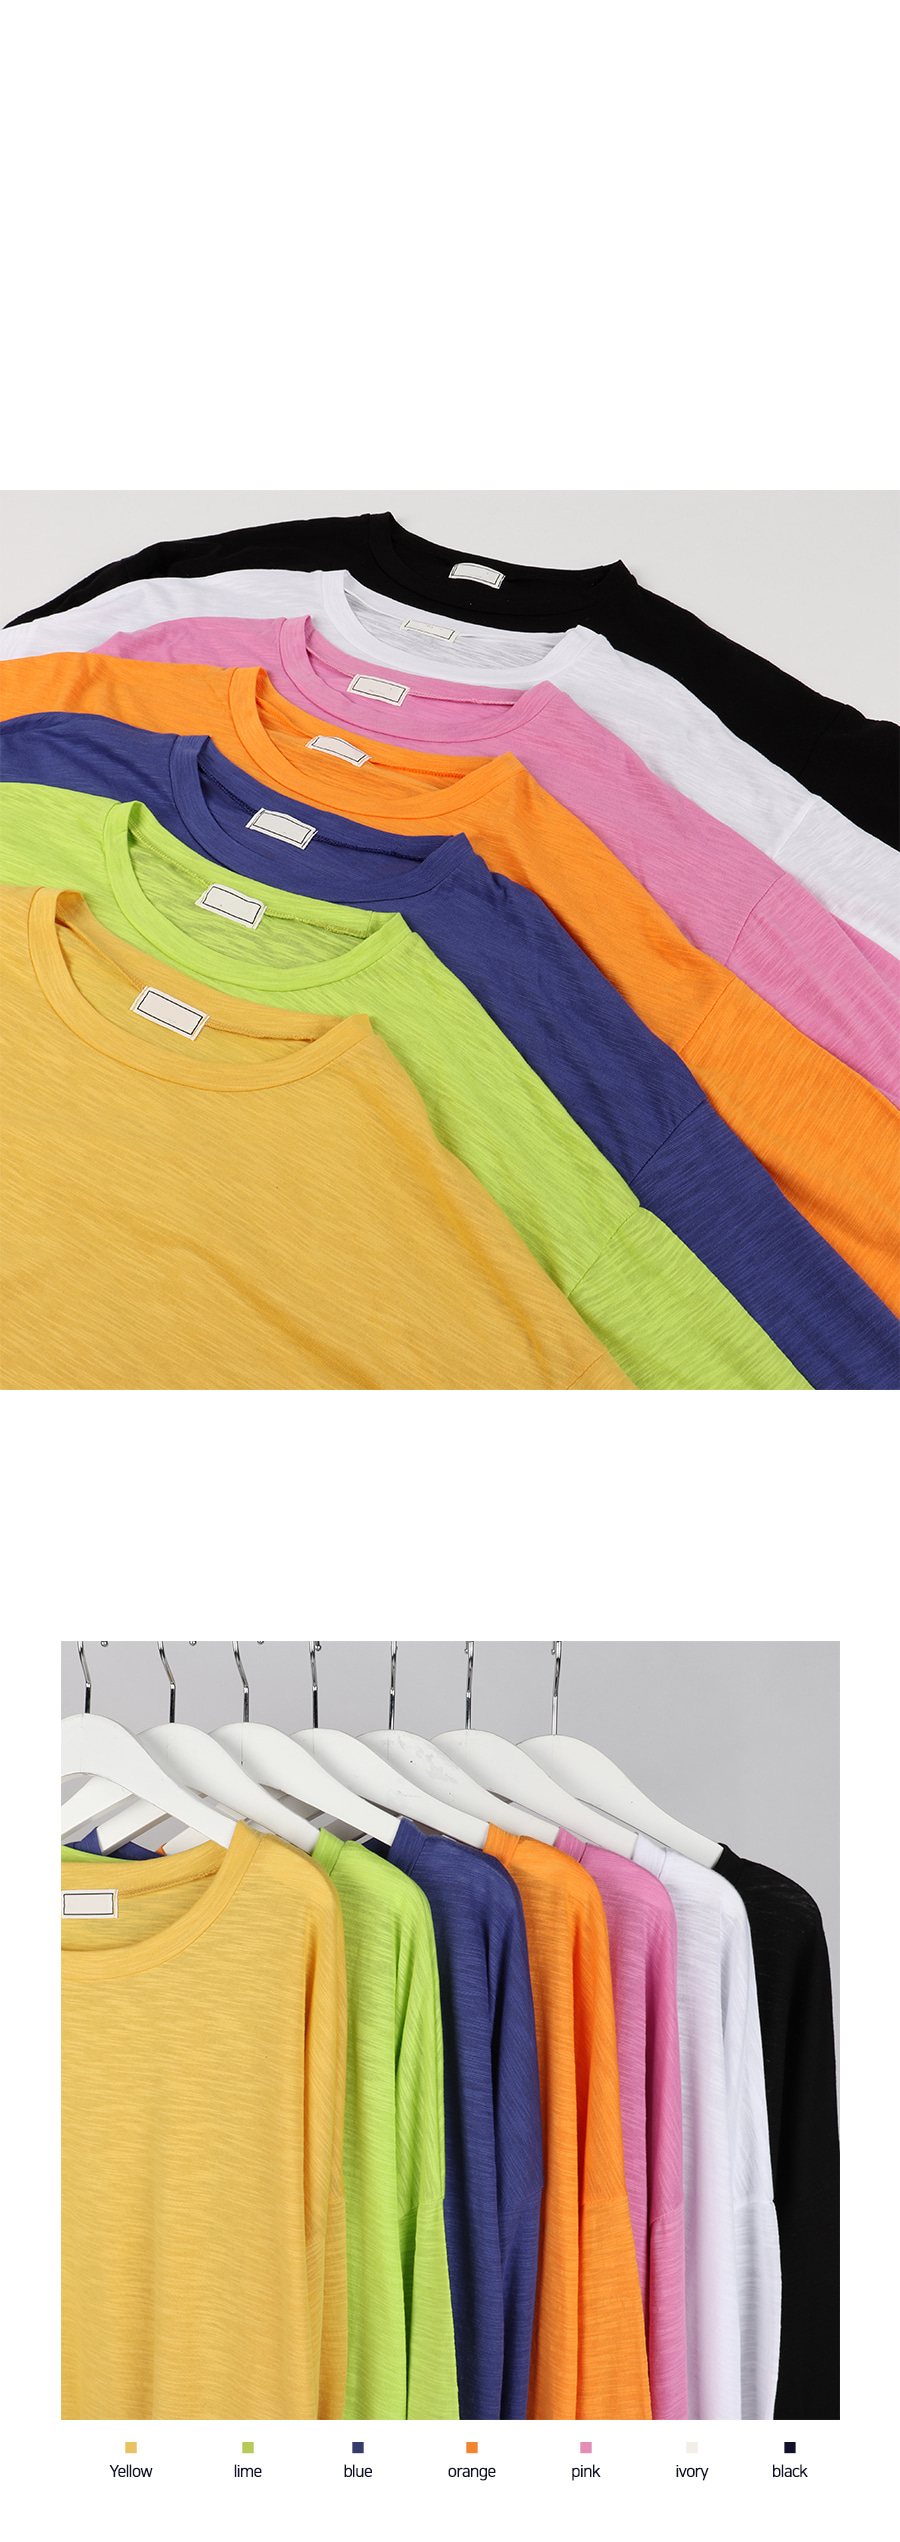 Molling overfit T-shirt